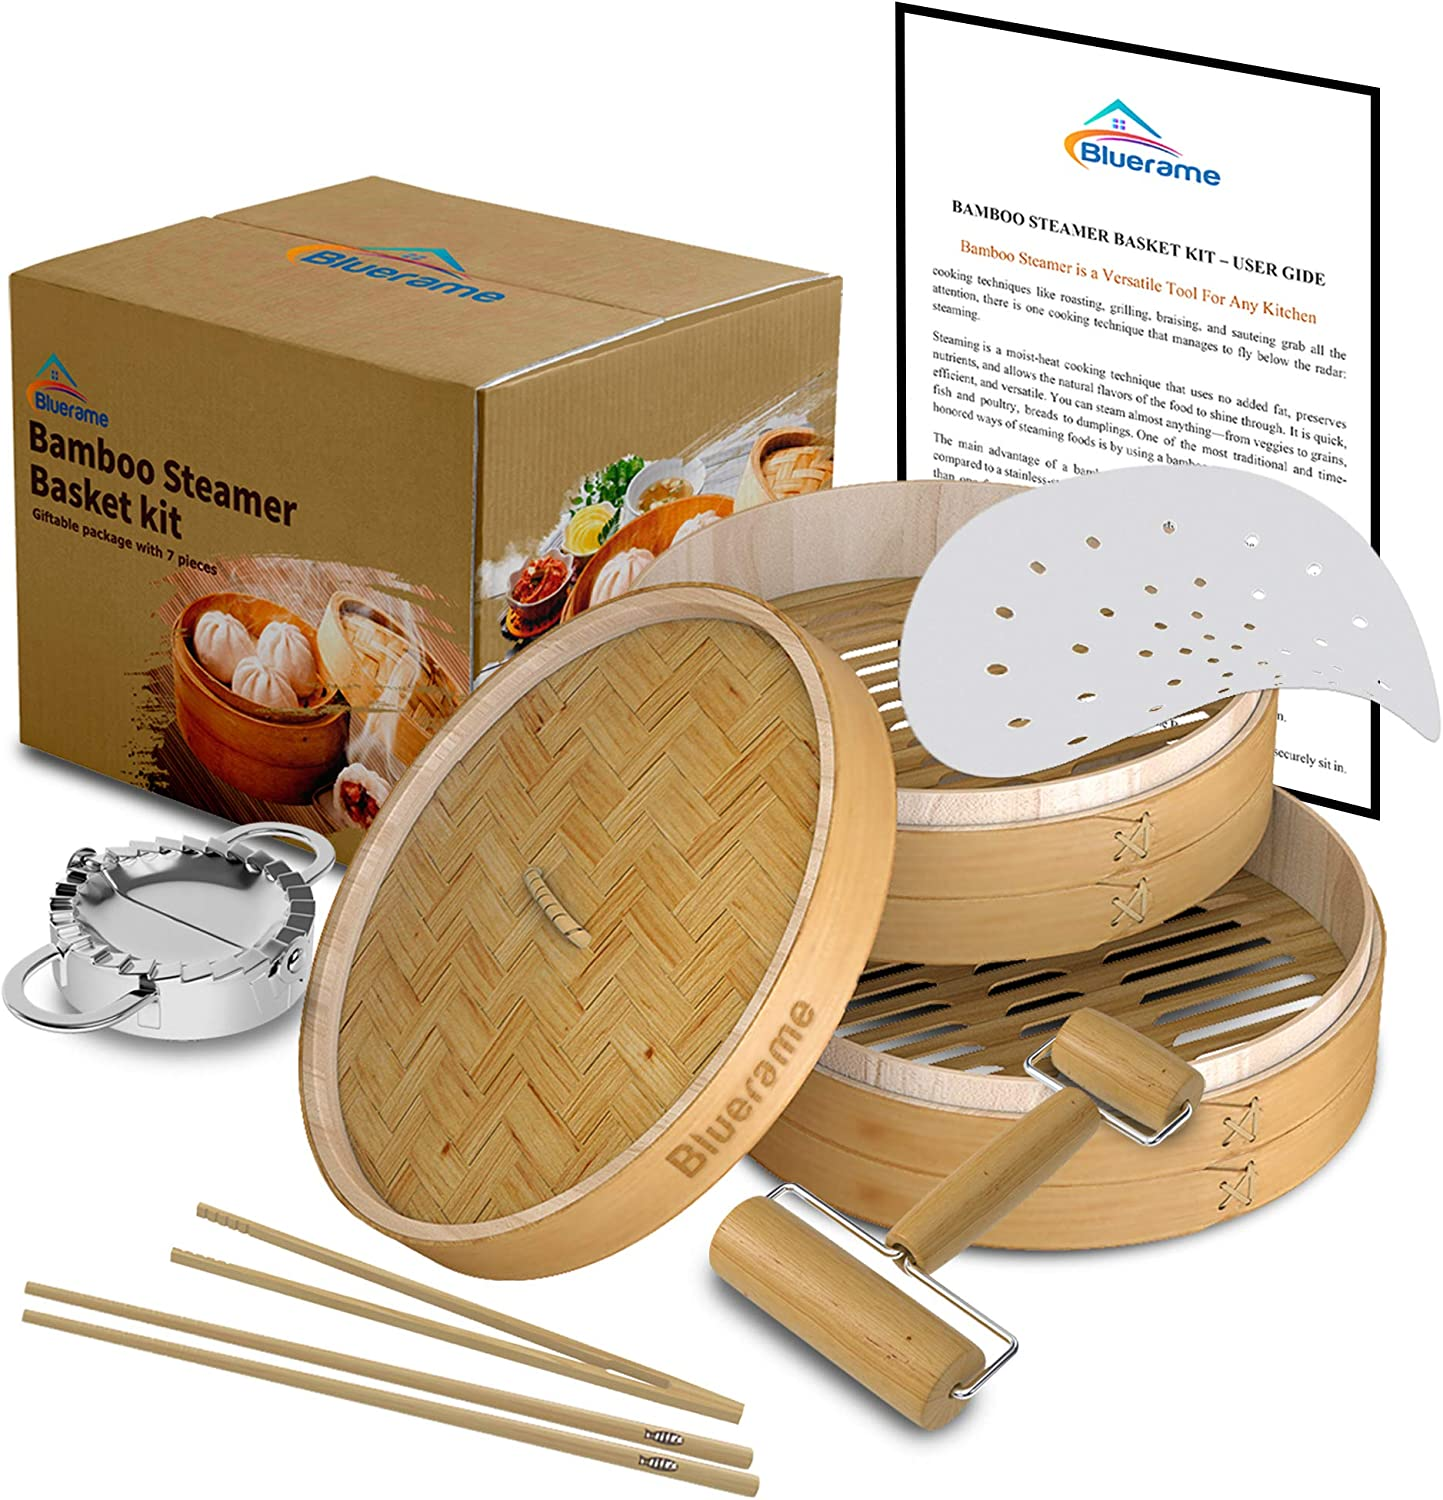 Bamboo Steamer basket Kit 10 inch with Lid,Dumpling Maker,handmade Cookware for cooking,Two Tier,Healthy Food Steamer,Chinese Cooker for Vegetables,Dim Sum,Chopstick,Cutter dough,Rolling Roll,Bao Buns